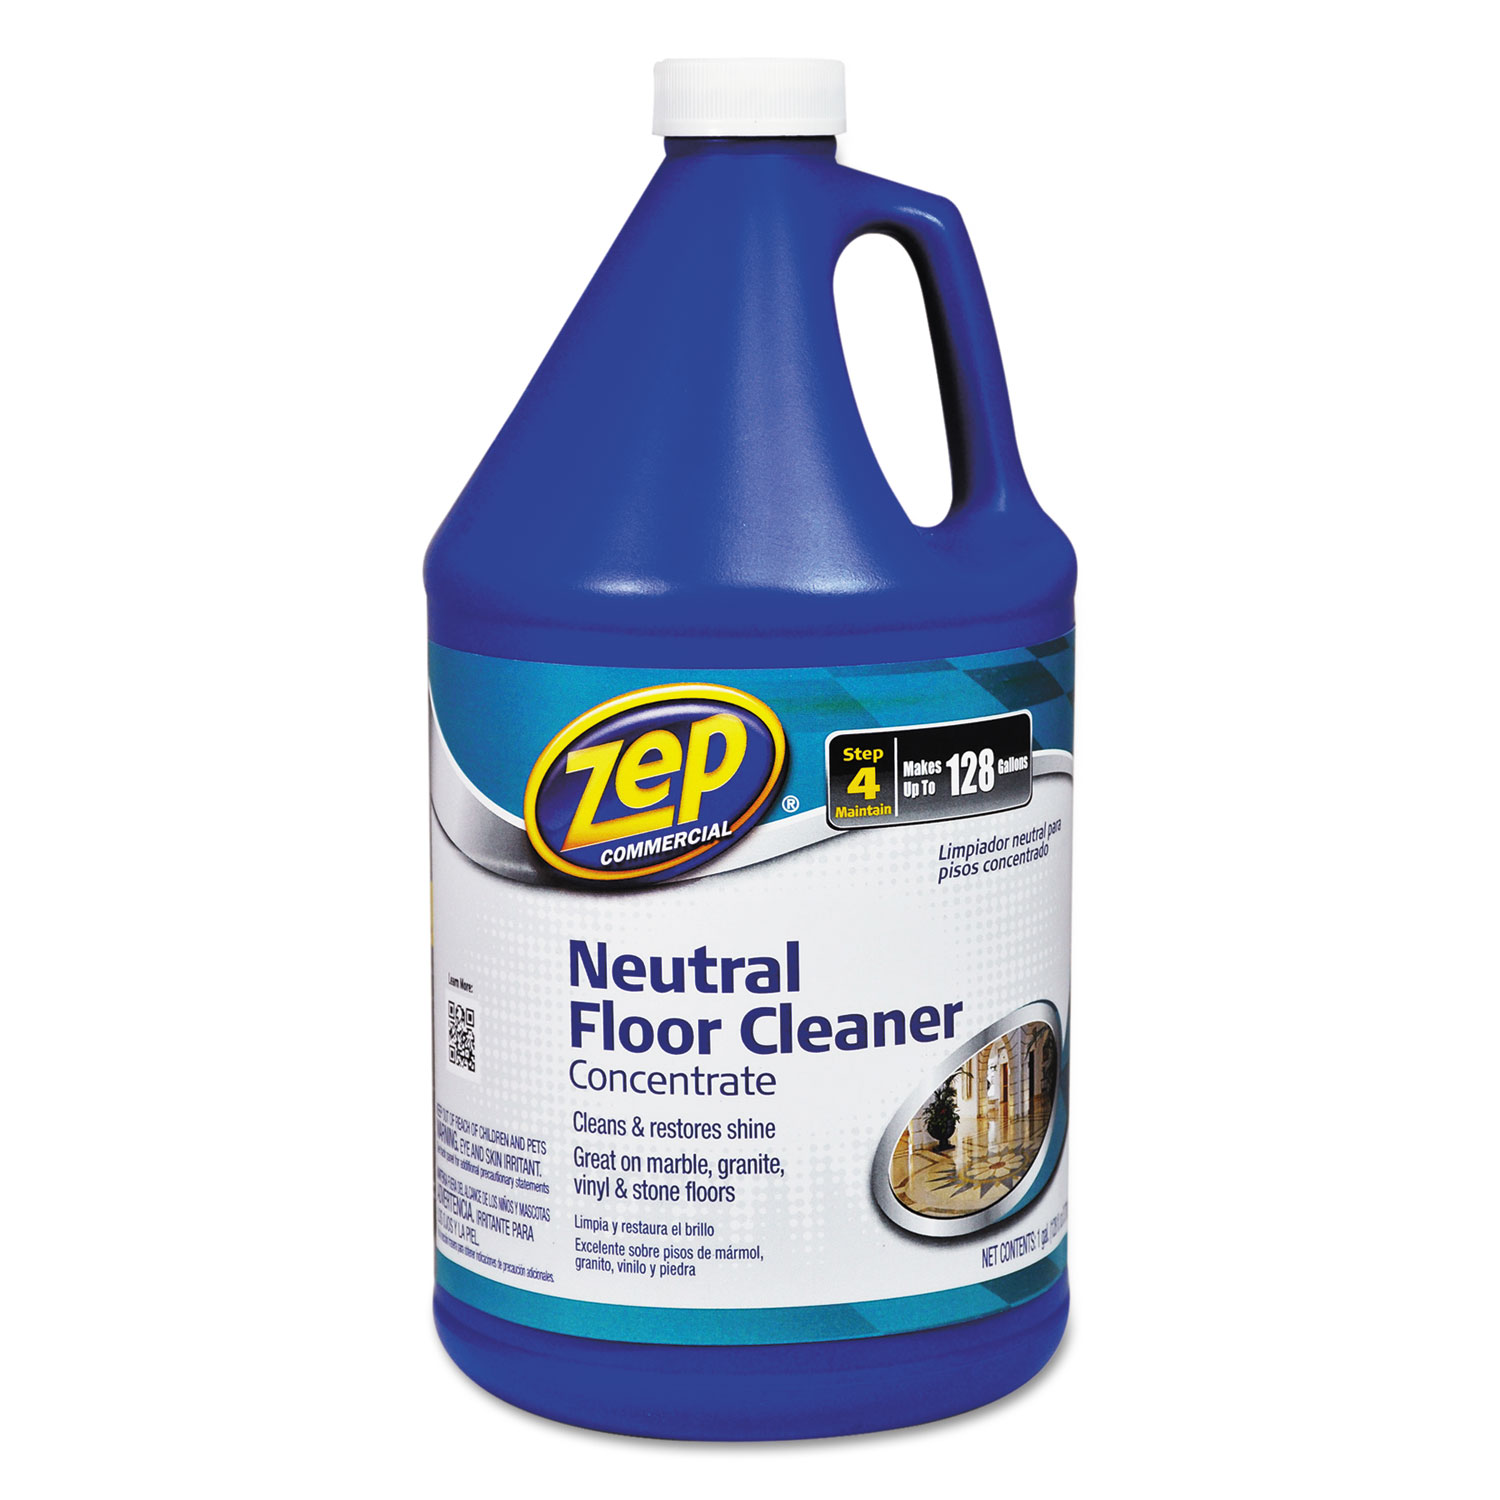 Multi-Surface Floor Cleaner, Pleasant Scent, 1 Gal Bottle